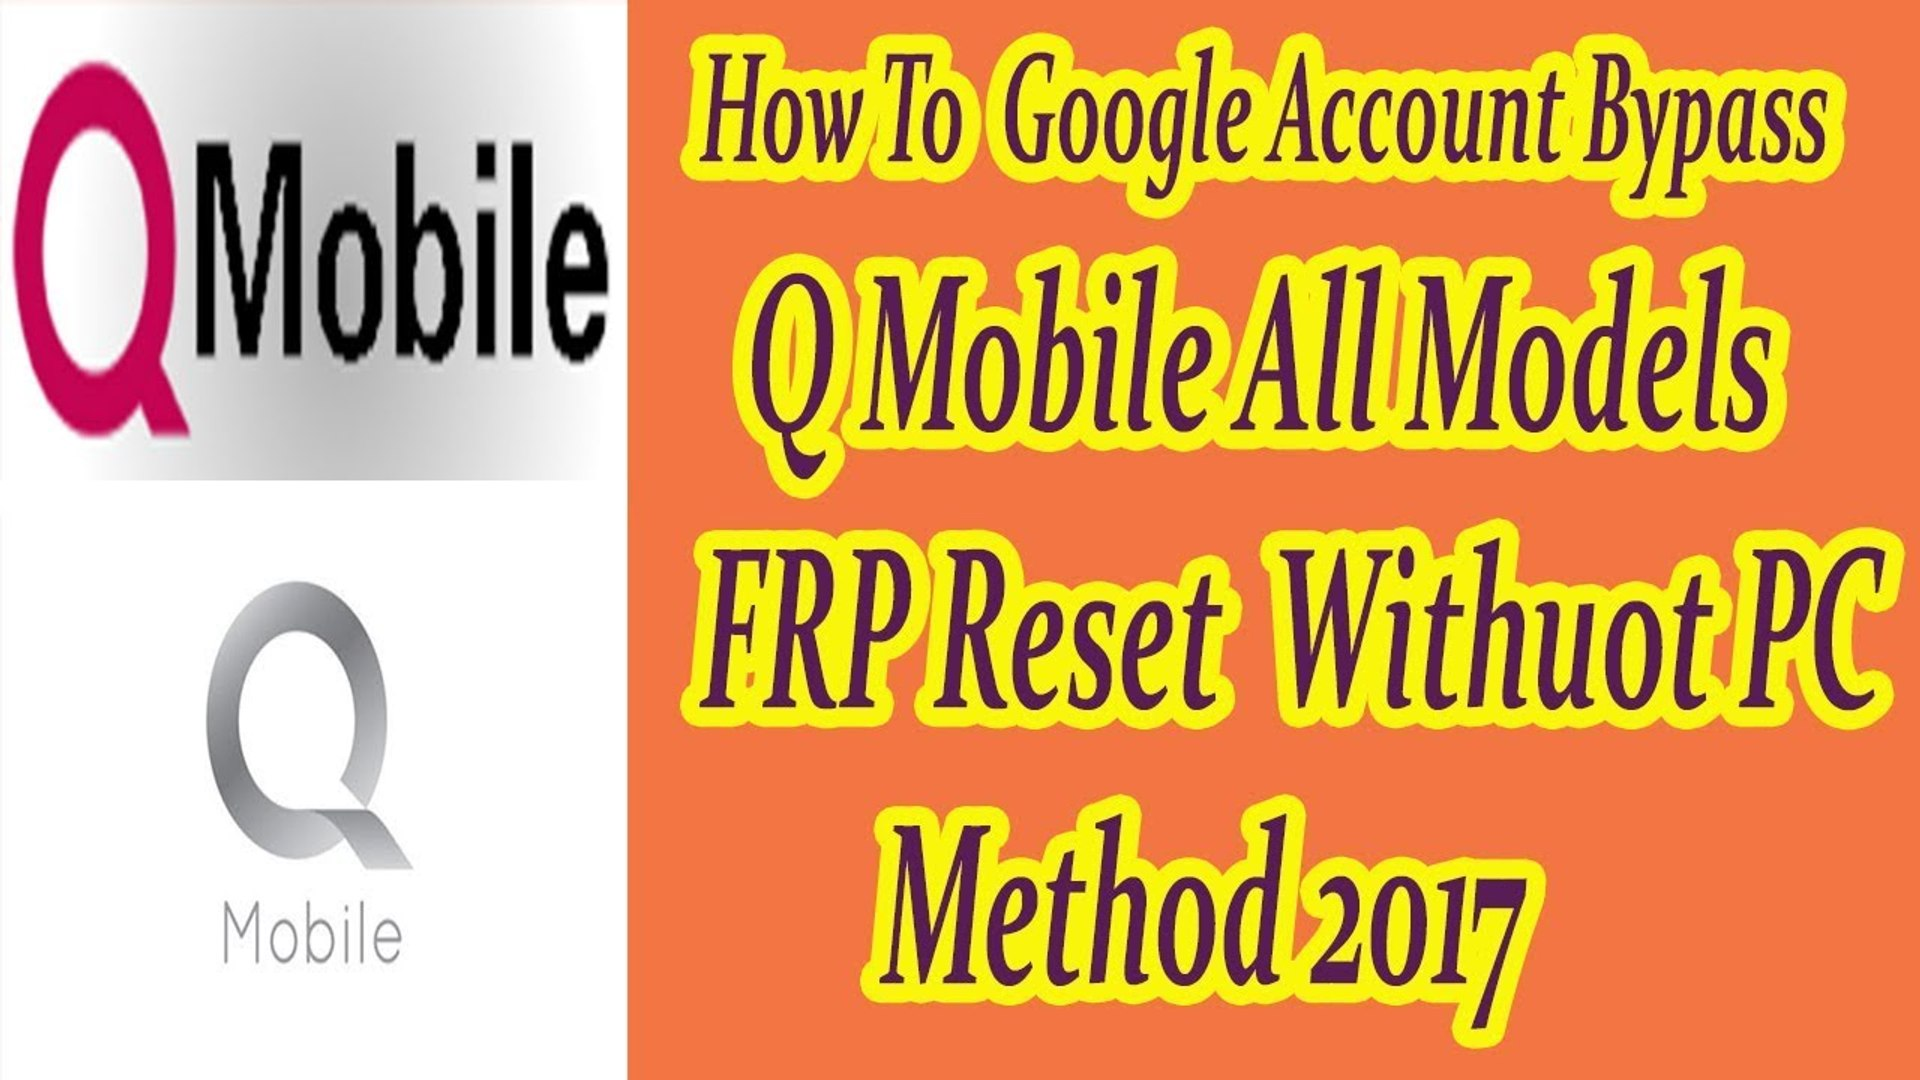 A New Way To Q Mobile all models Google Account bypass method 2017 / FRP  Reset Withuot PC